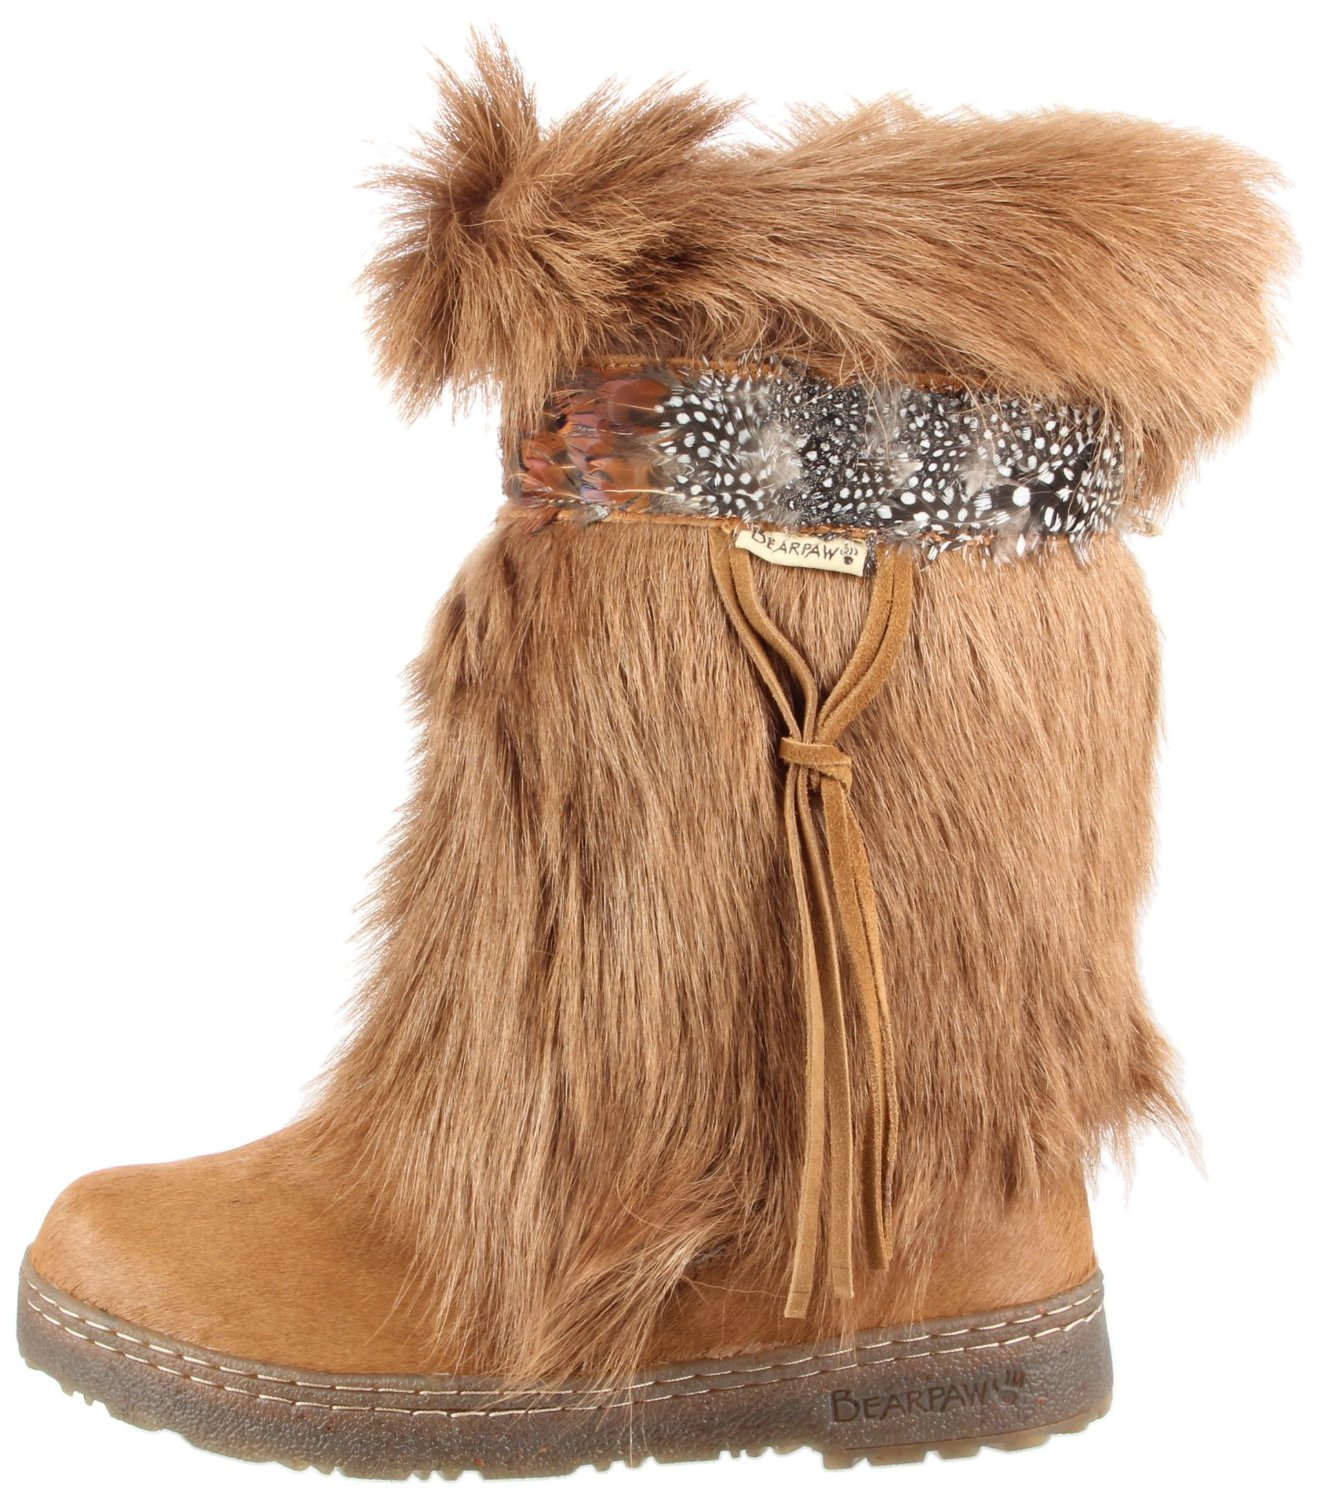 Fur Boots. Fur boots keep feet warm when cold seasons arrive. Boots with faux fur lining and trim are perfect for walking in the snow. For added warmth, boots have down insulation and feature a lace-up closure to keep heat inside.